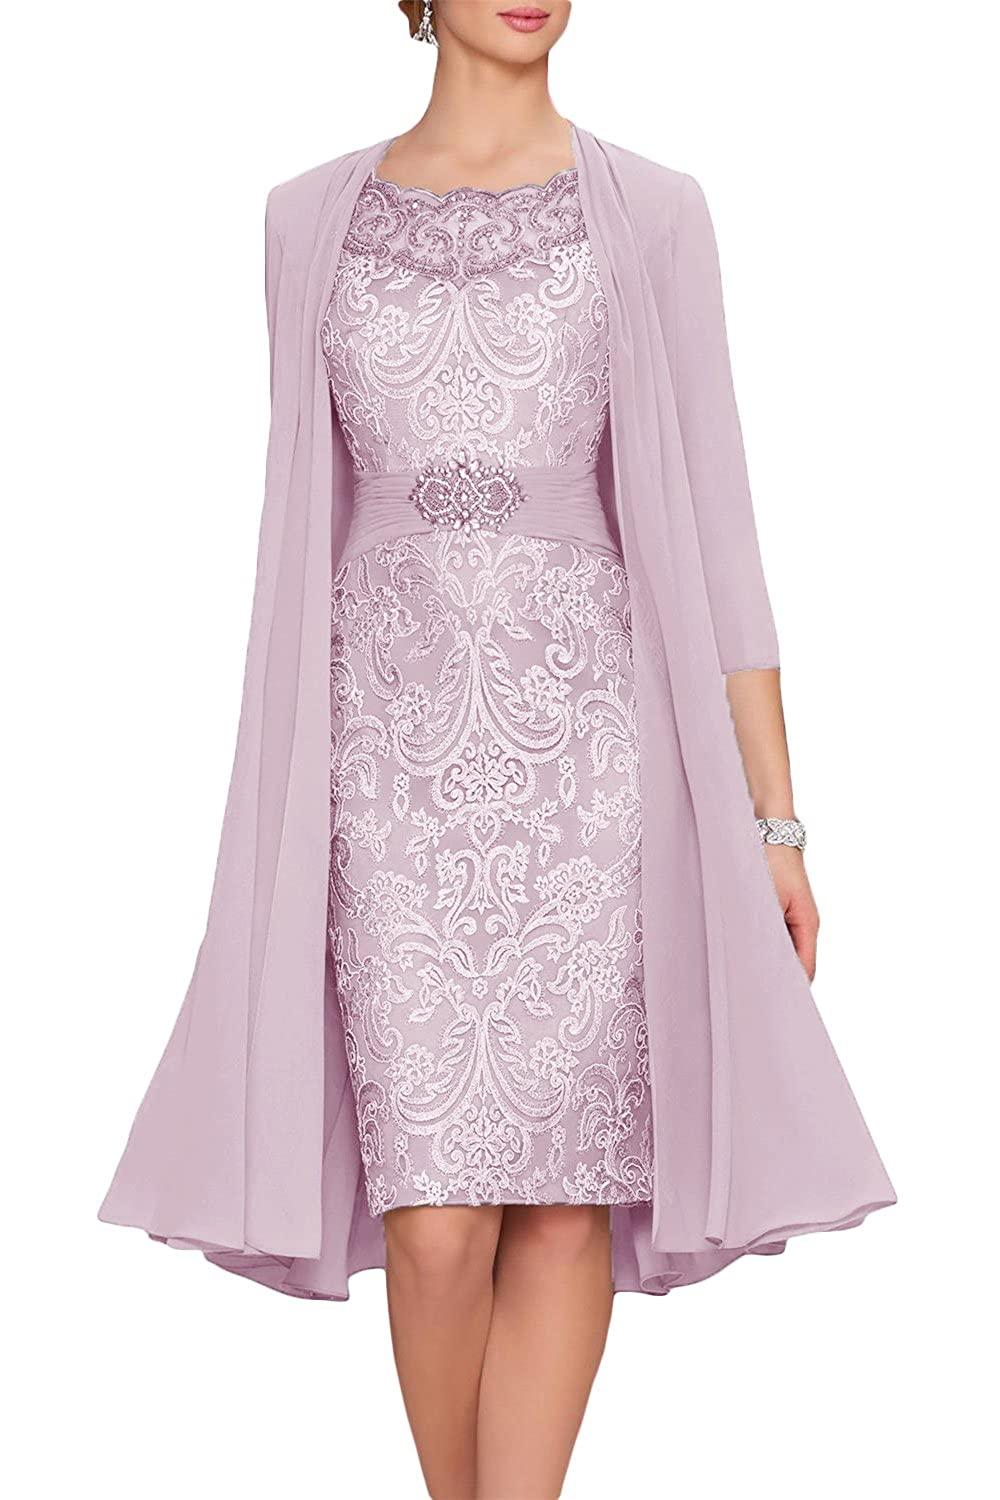 Newdeve Chiffon Mother The Bride Dresses Tea Length Two Pieces ...